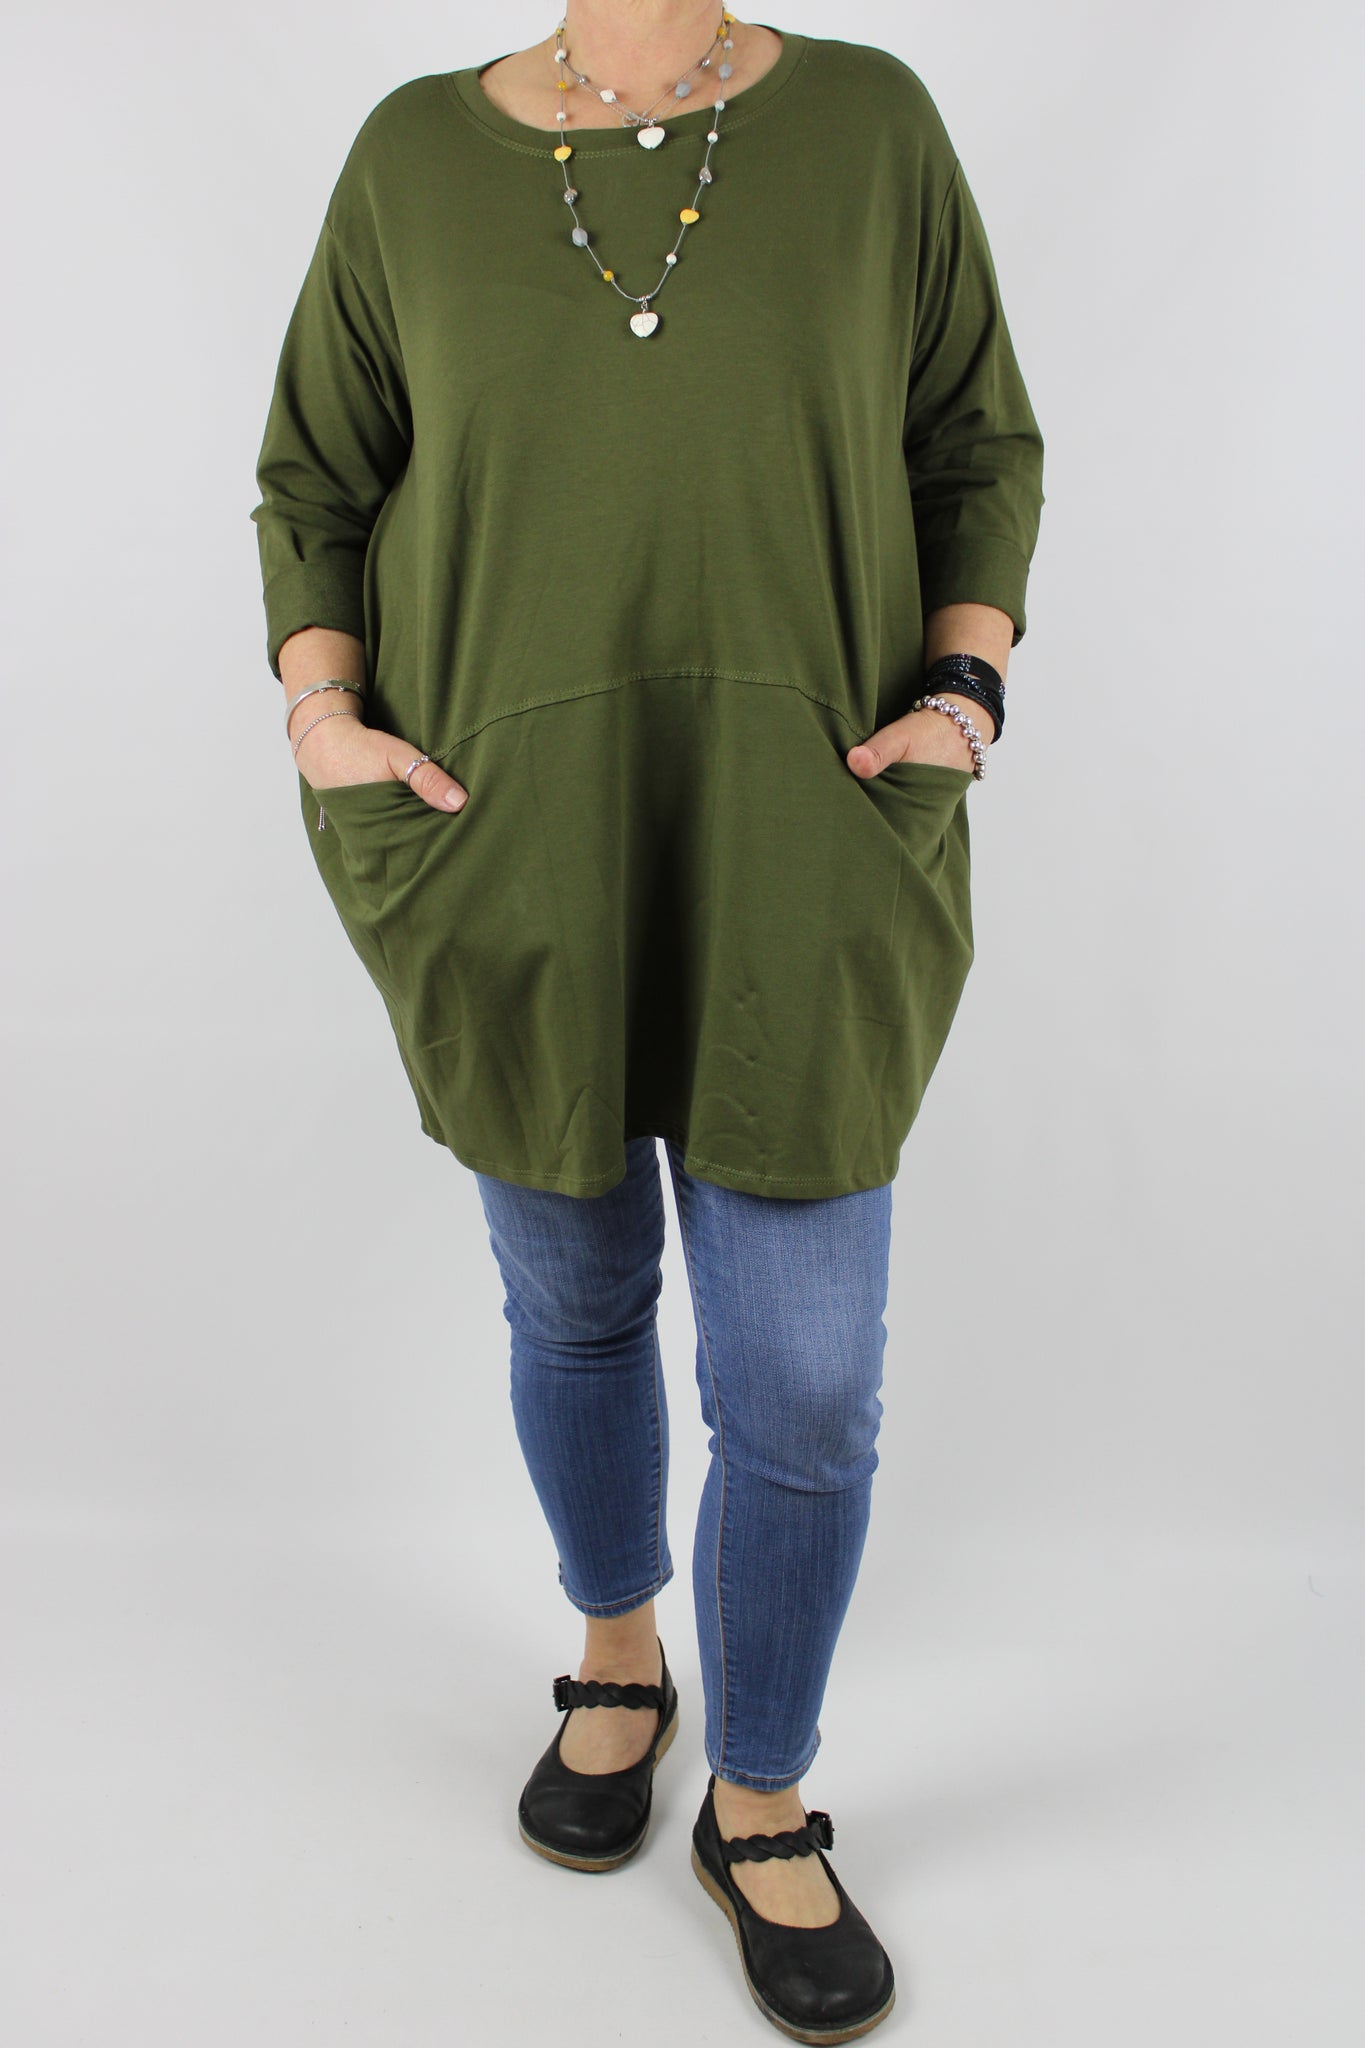 Cotton Two Pockets Top Tunic Size 12 14 16 18 20 22 in Olive Green